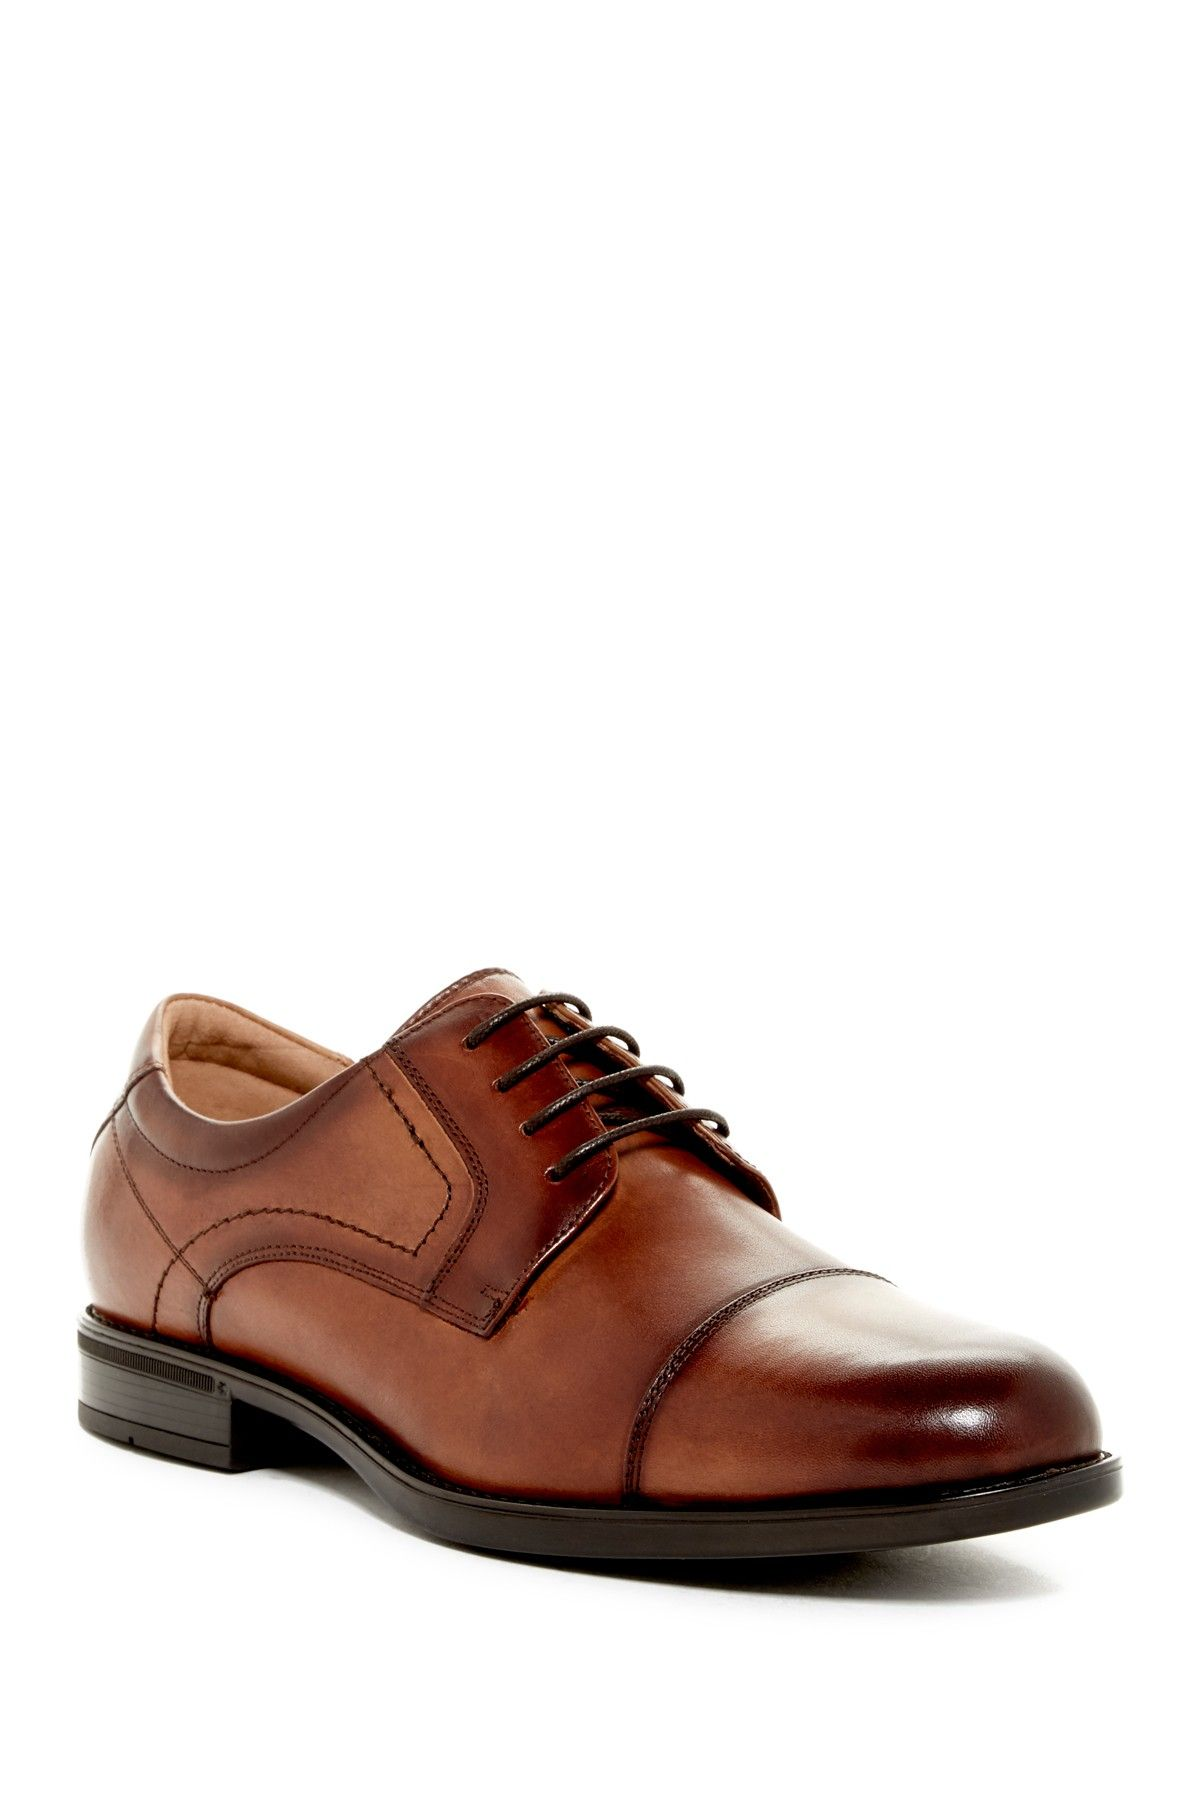 Florsheim Center Cap Toe Derby Wide Width Available | Men